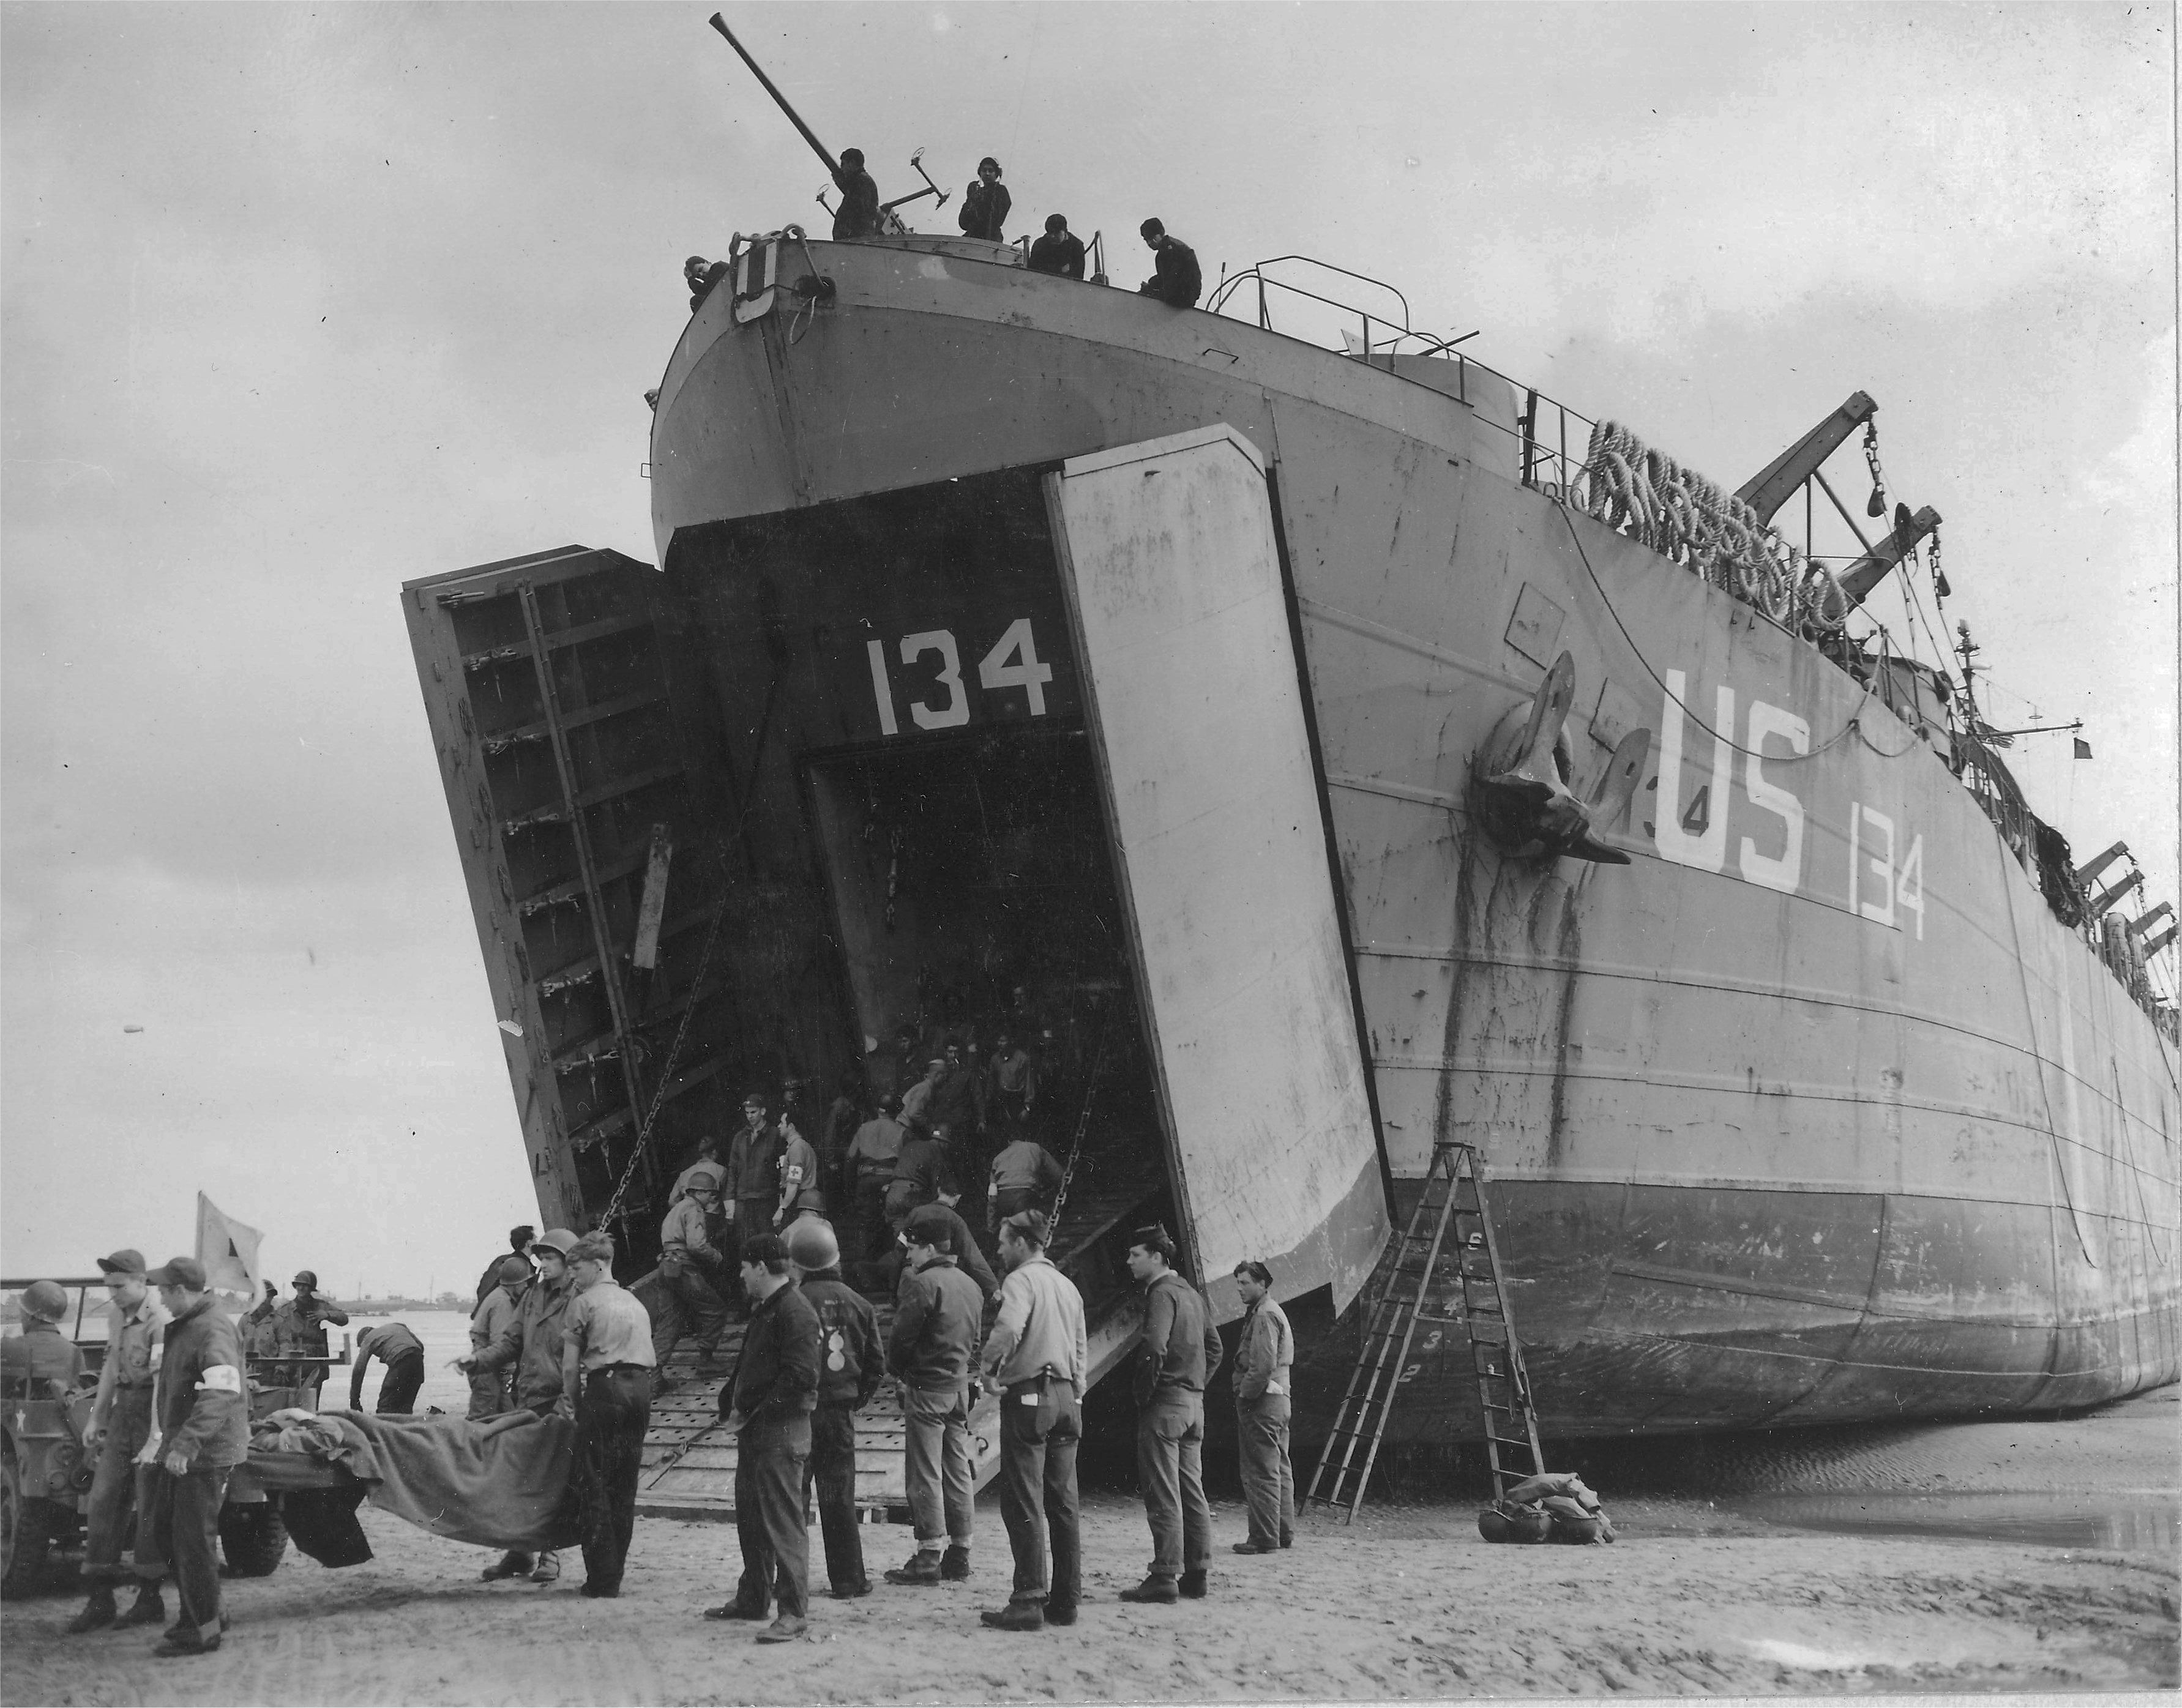 Photo Us Navy Lst 134 And Lst 325 Beached At Normandy France As